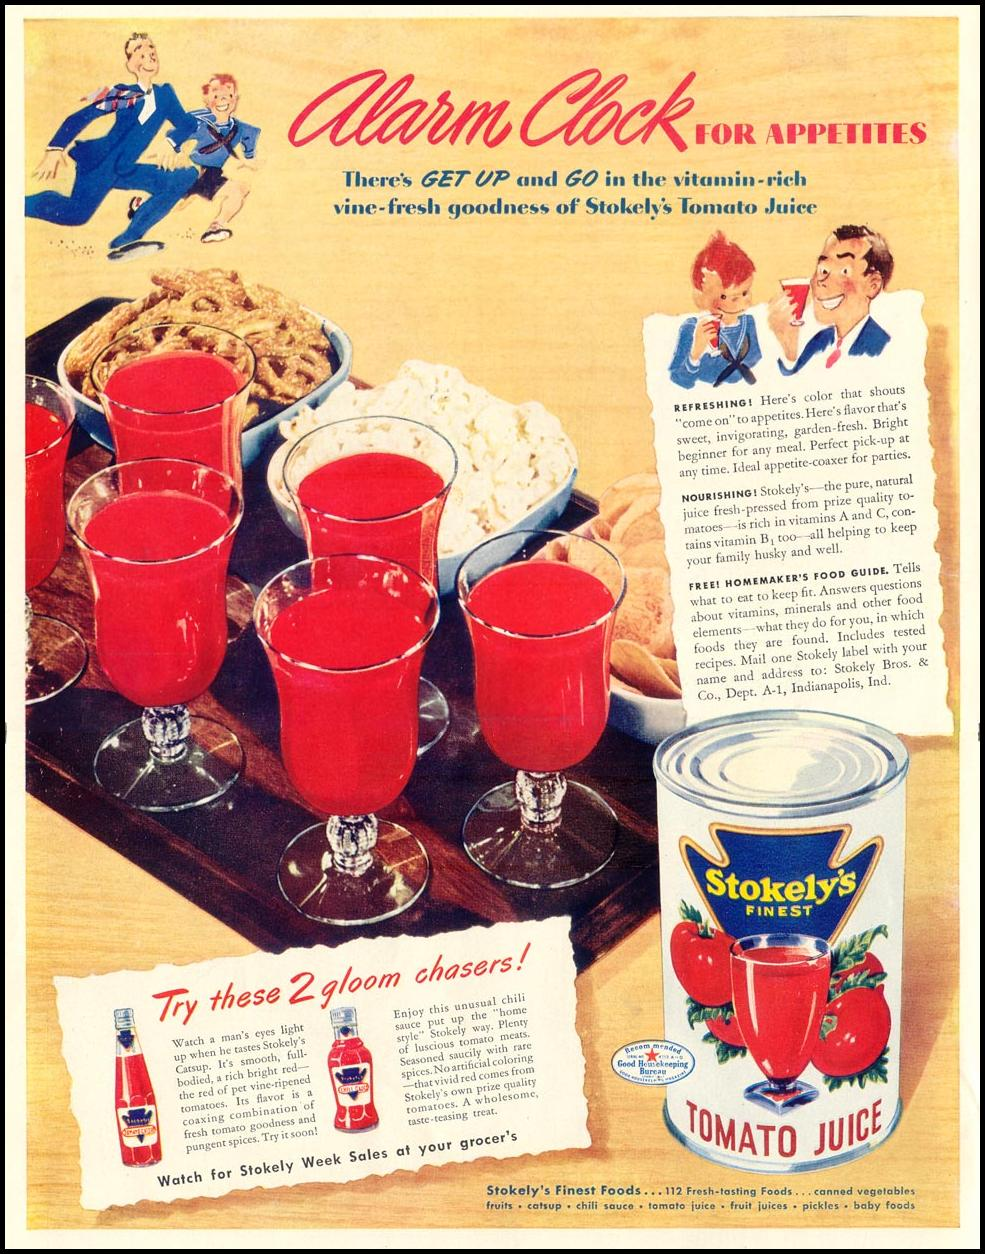 STOKELY'S FINEST TOMATO JUICE LIFE 10/13/1941